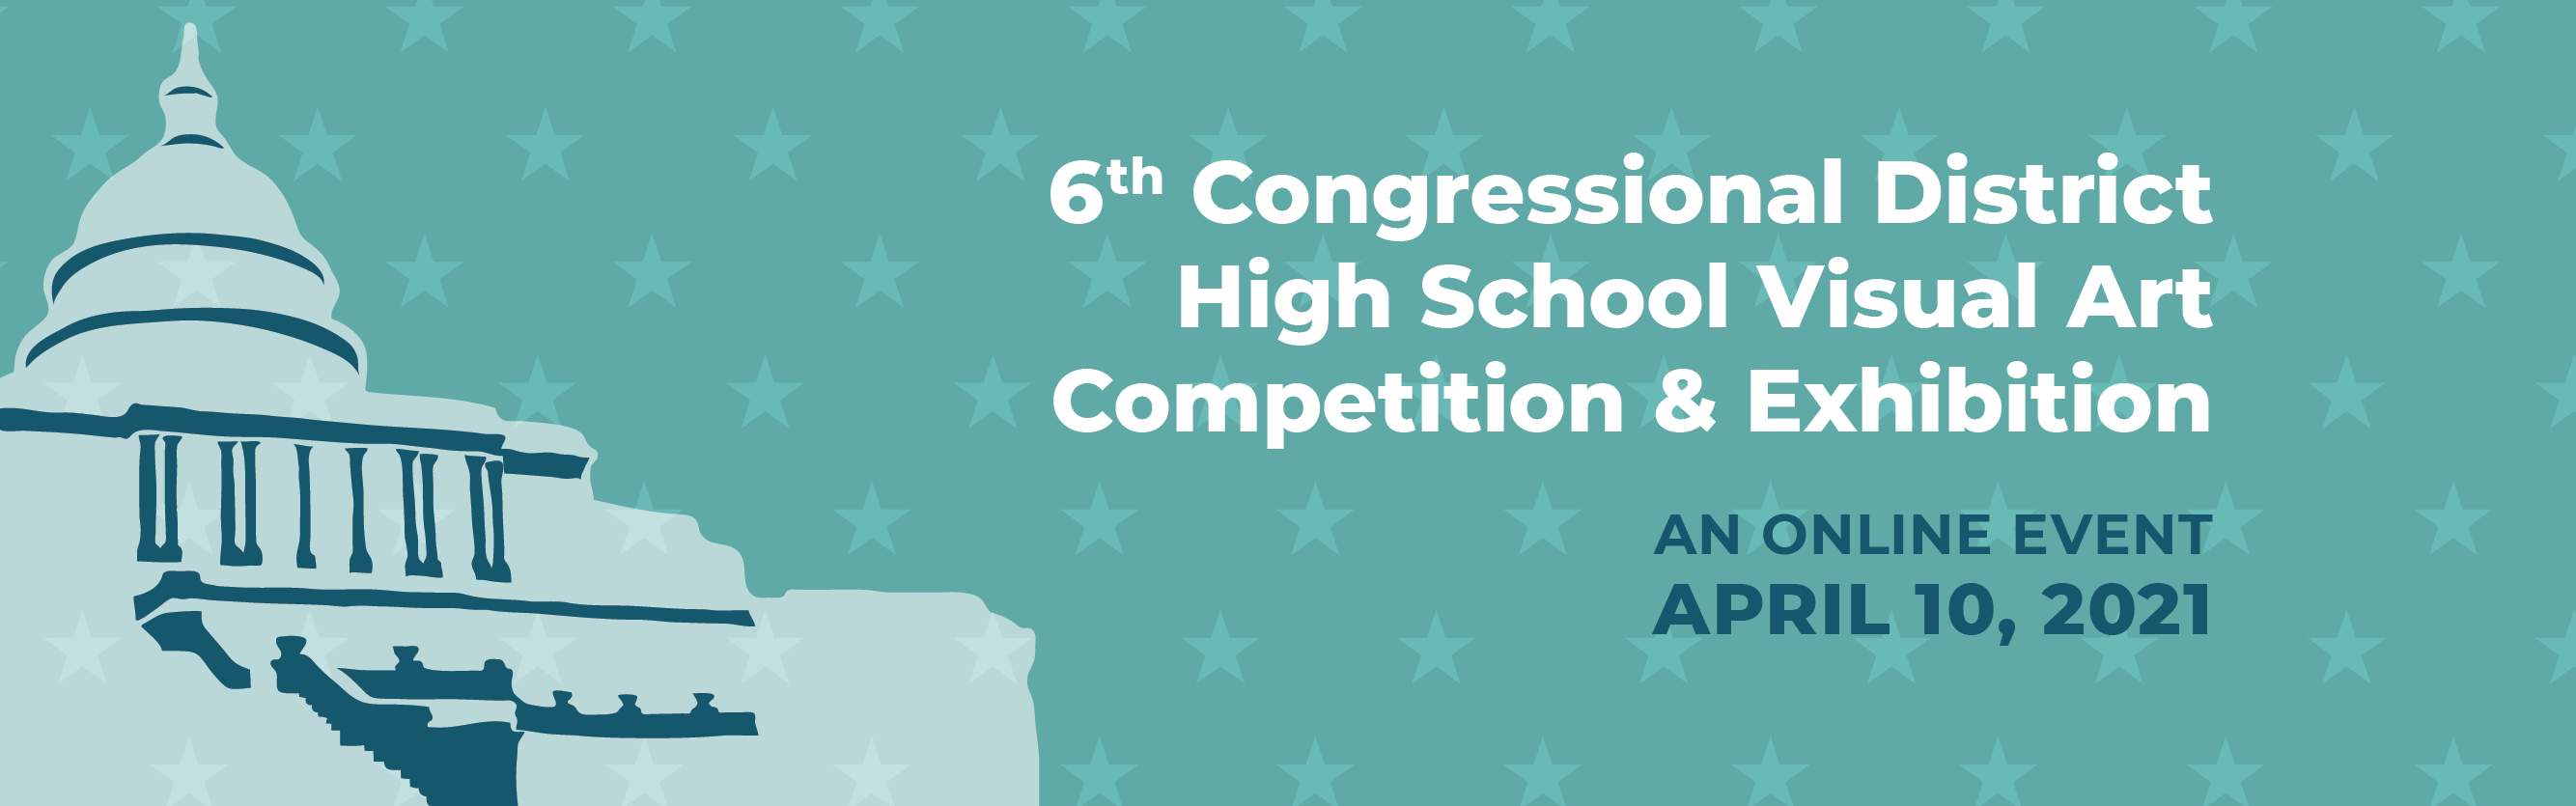 6th Congressional District High School Visual Art Competition & Exhibition